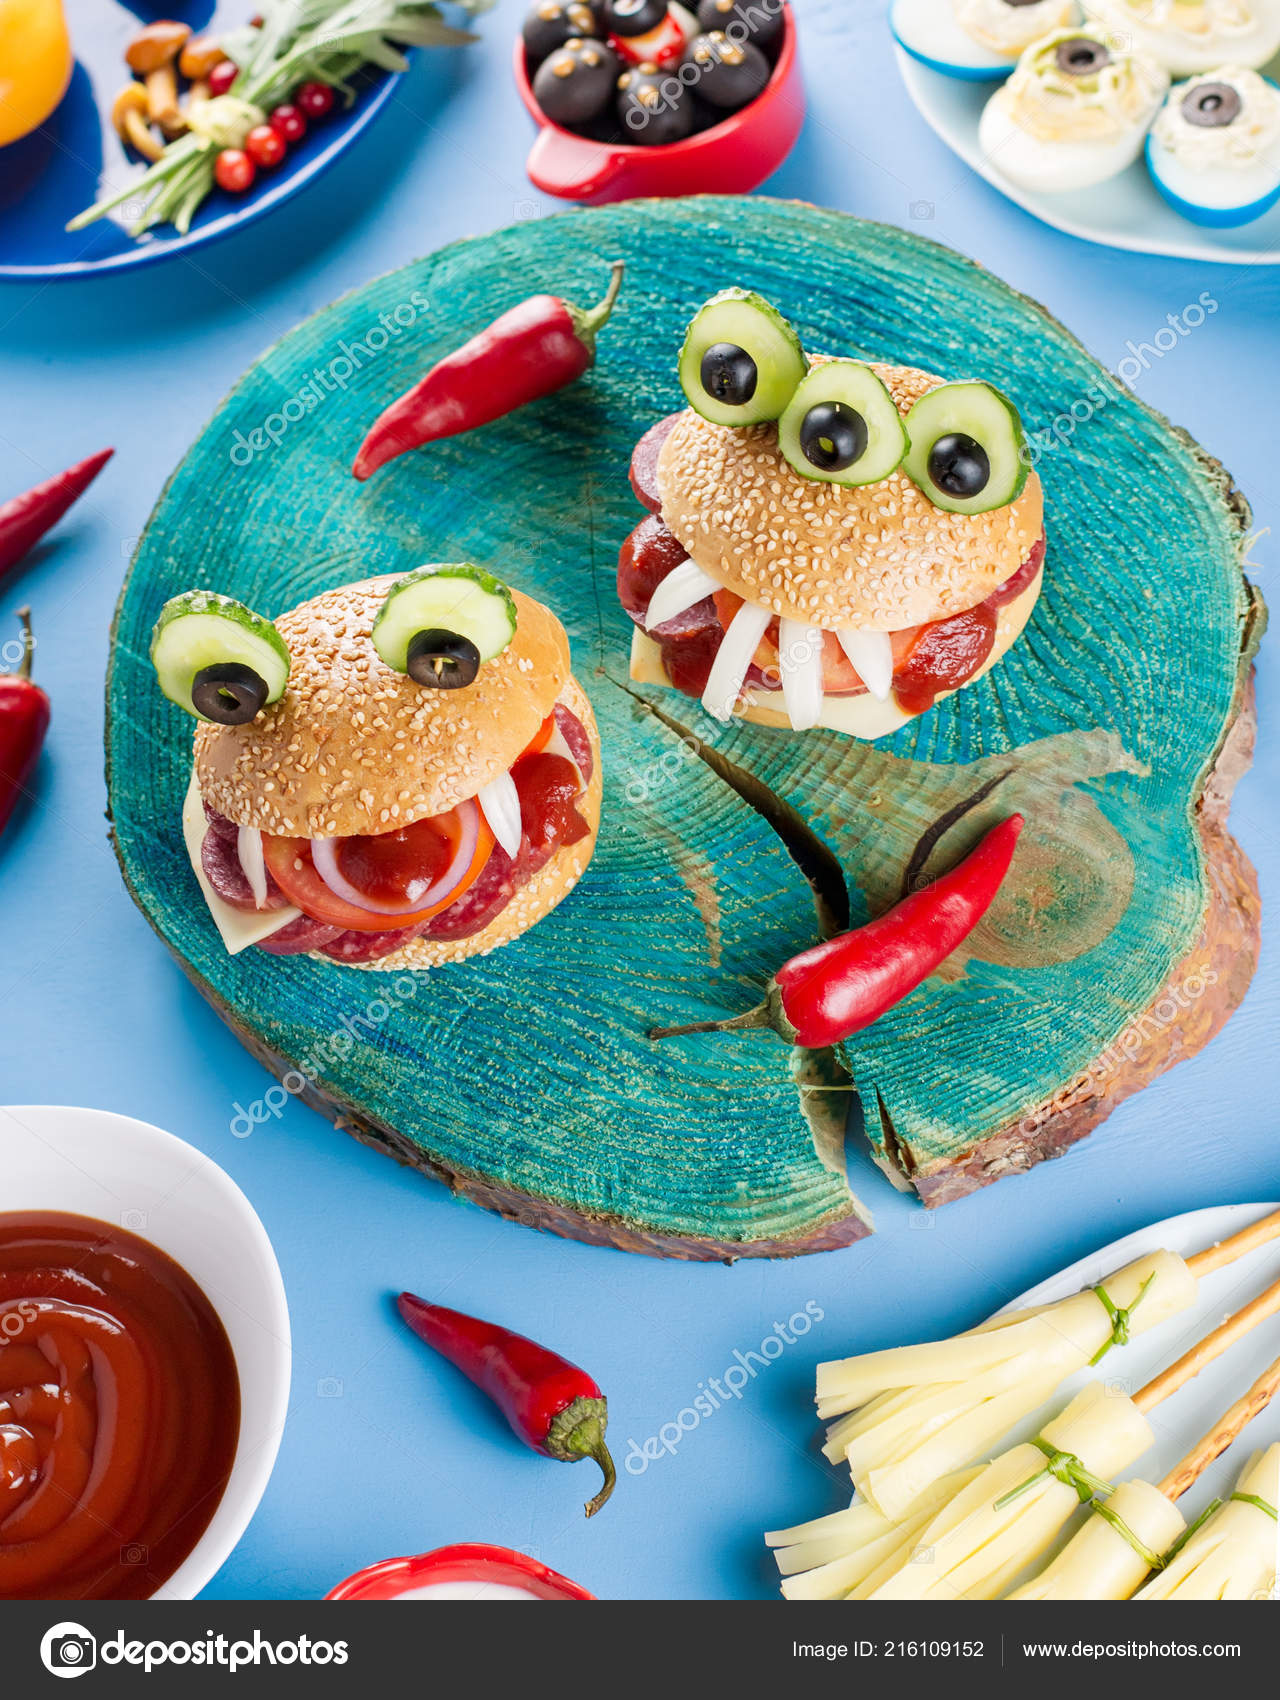 Halloween Hamburgers.Halloween Party Food Stuffed Peppers With Scary Faces